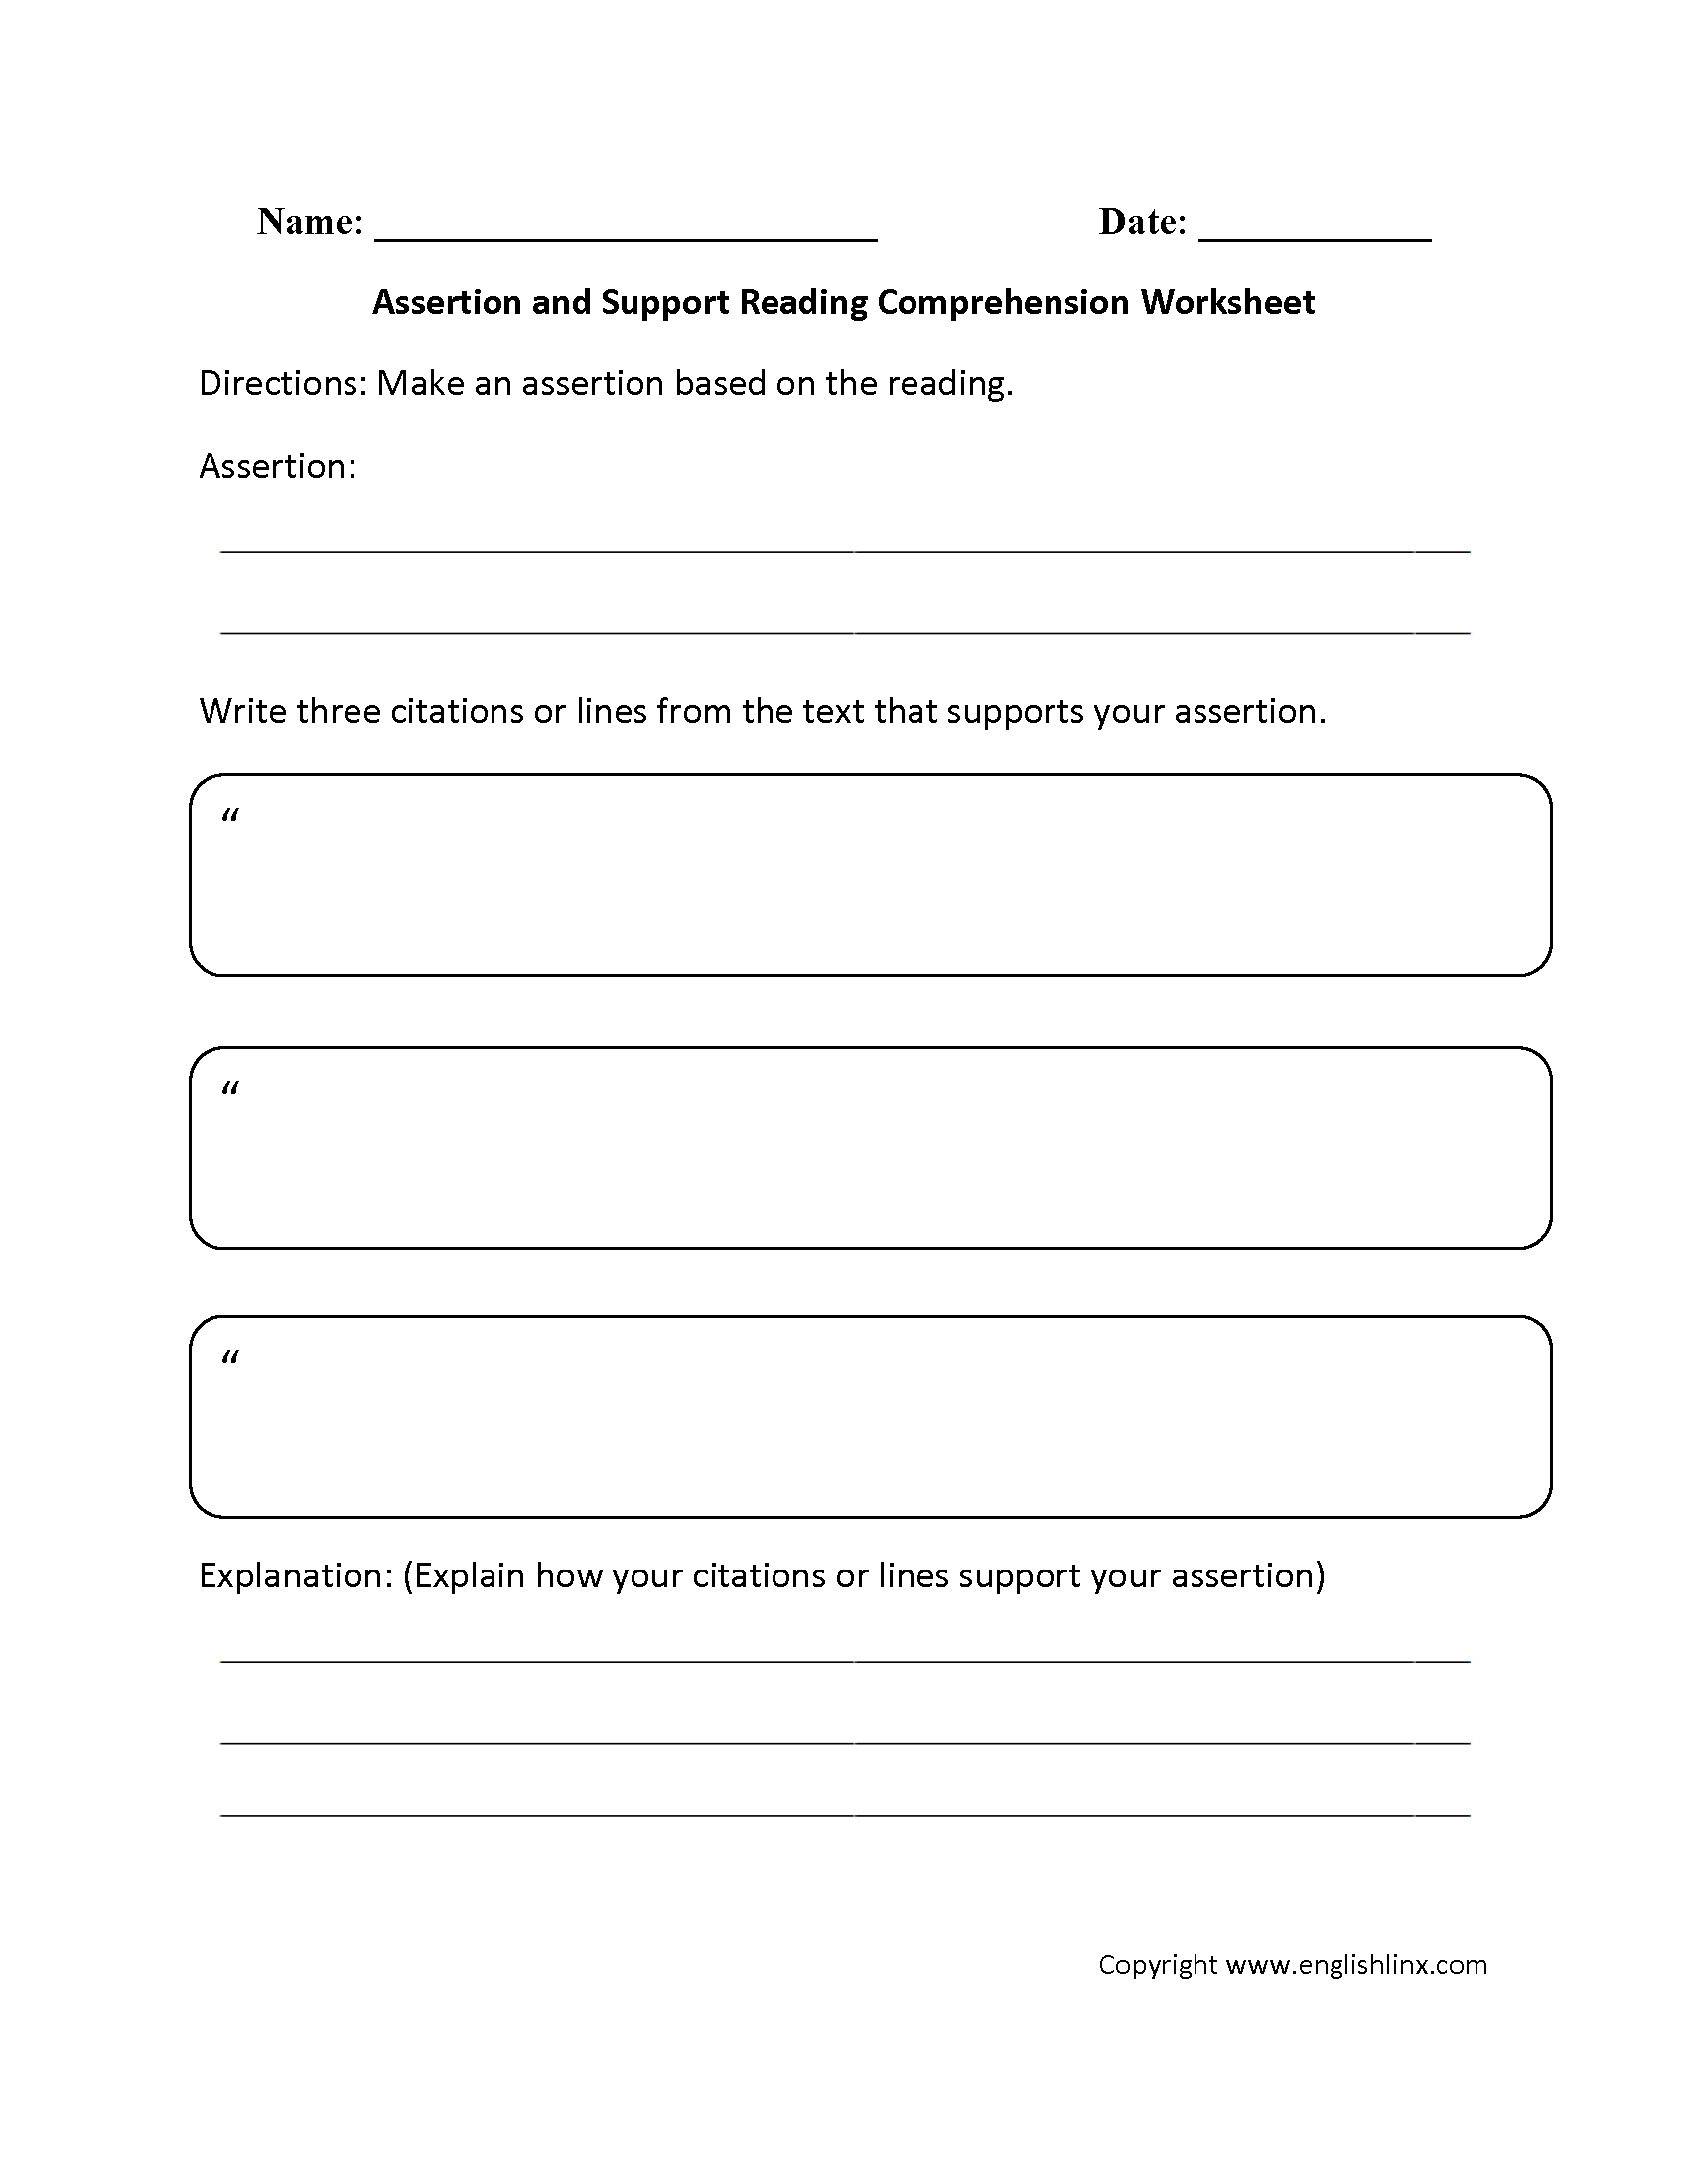 Reading Comprehension Essay Worksheets